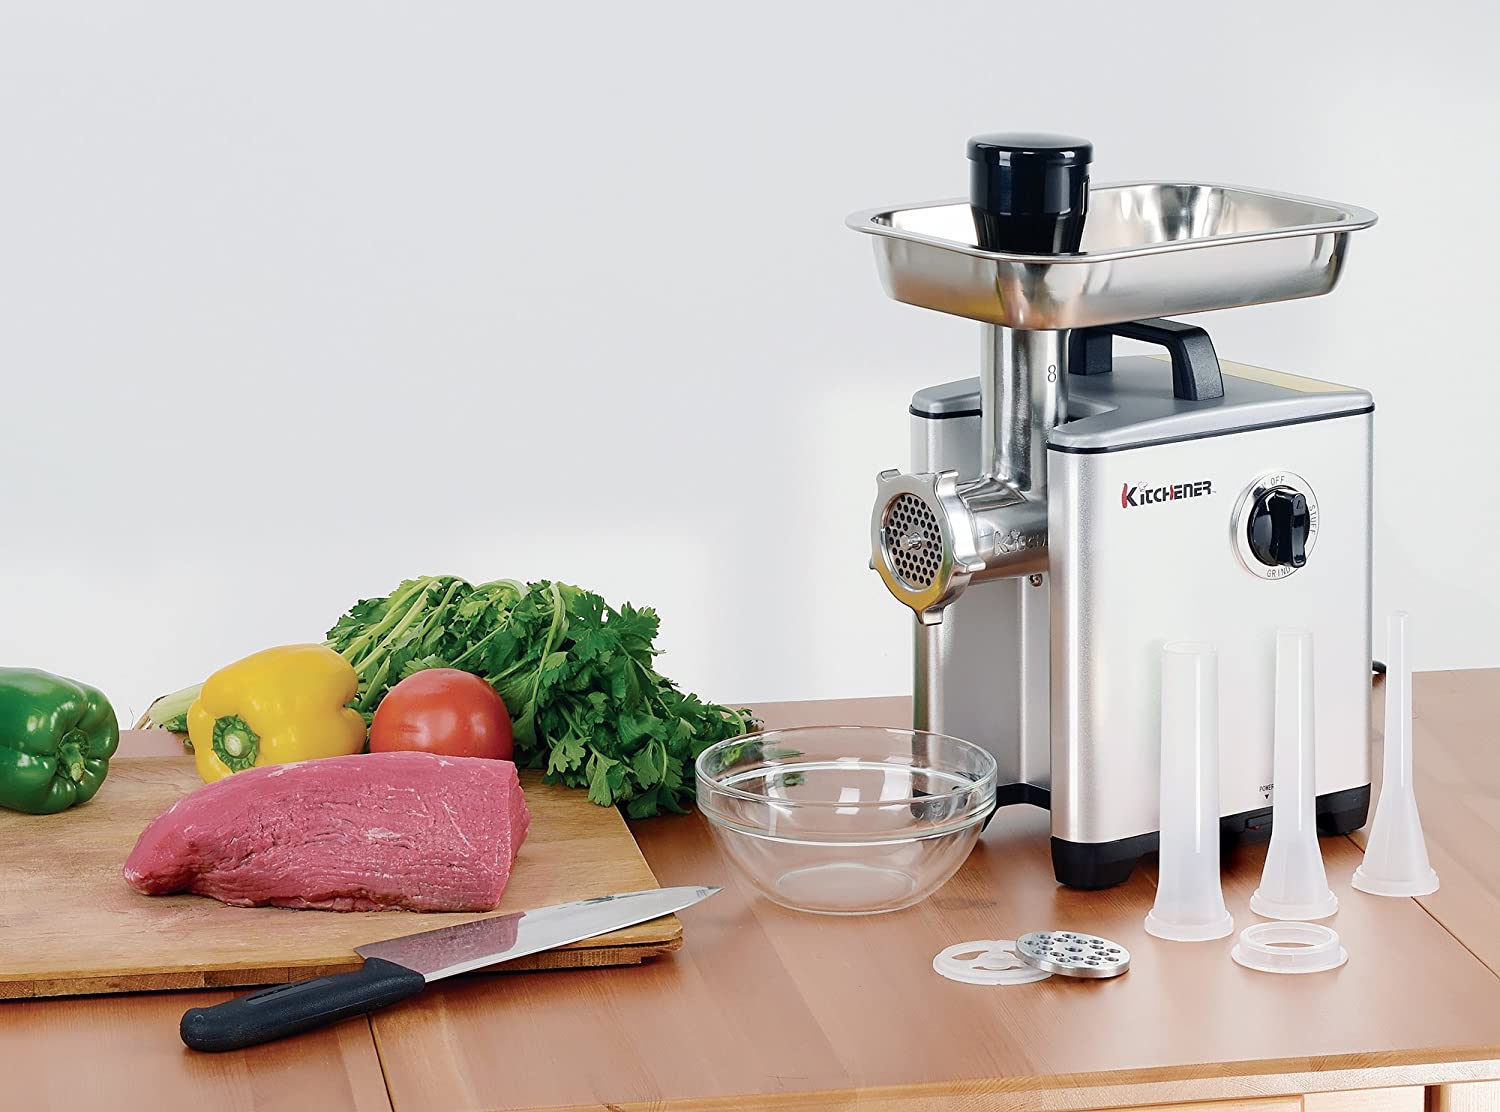 Kitchener Heavy Duty Electric Meat Grinder 2/3 HP (500W), 3-speed ...